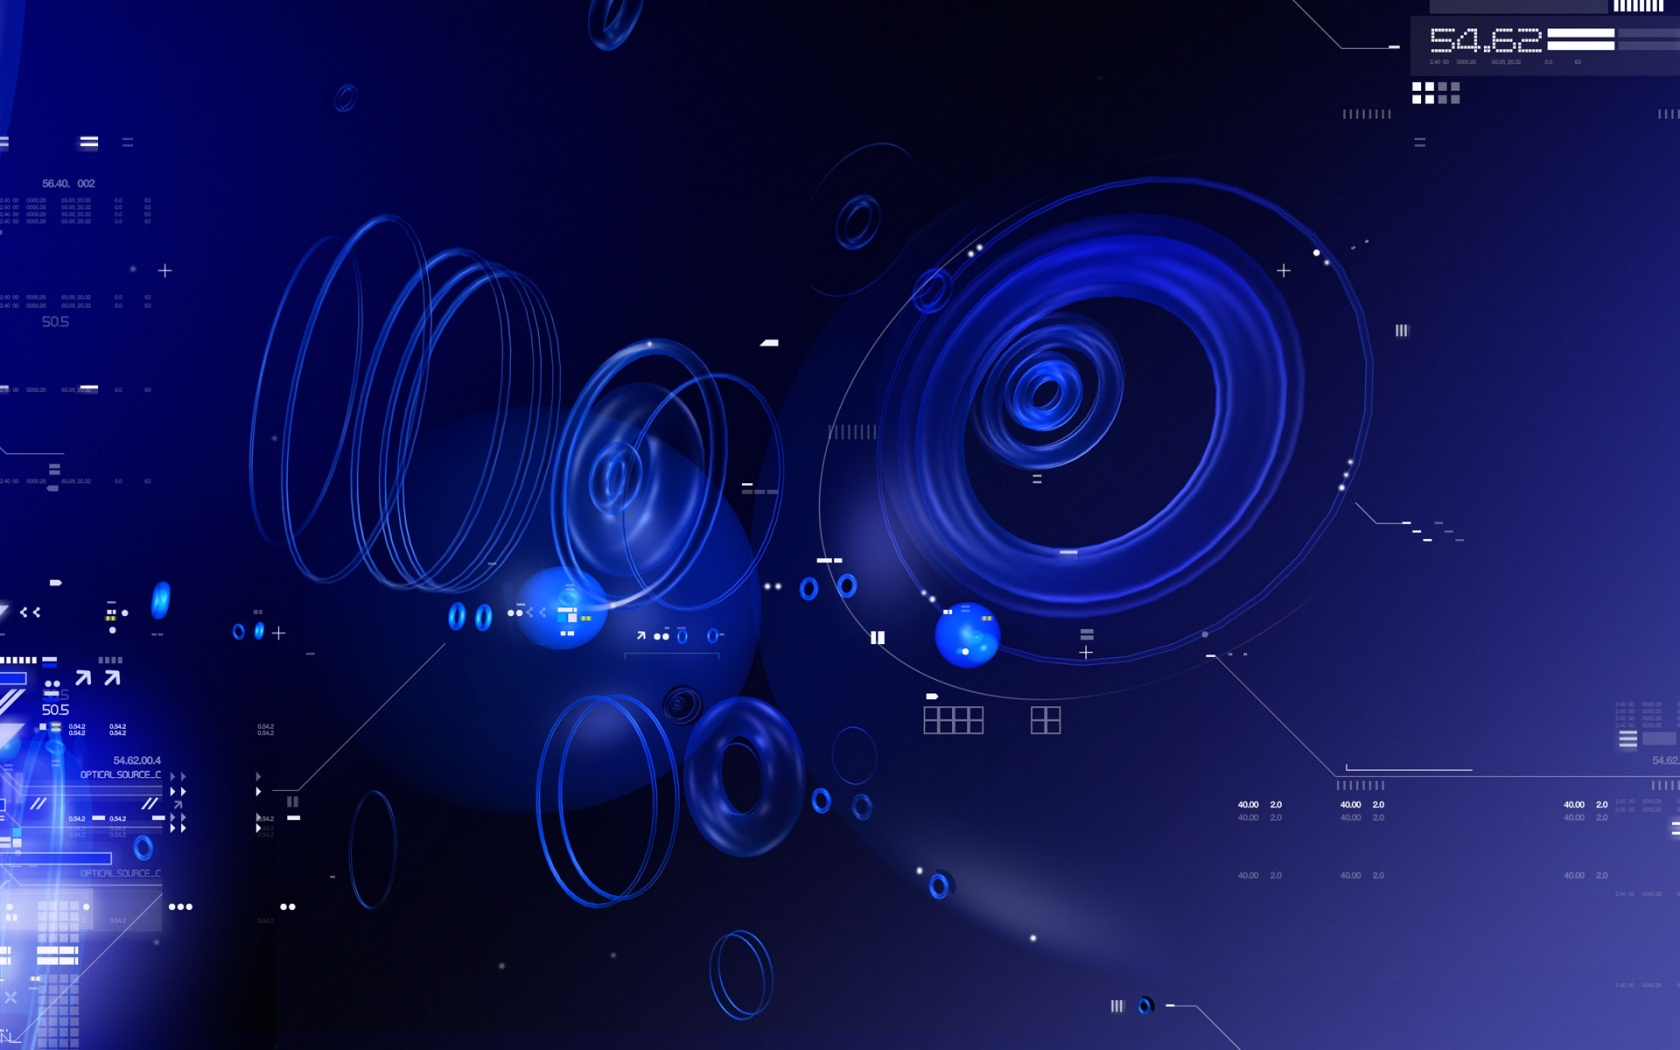 Blue Tech Circles Wallpapers HD 1680x1050